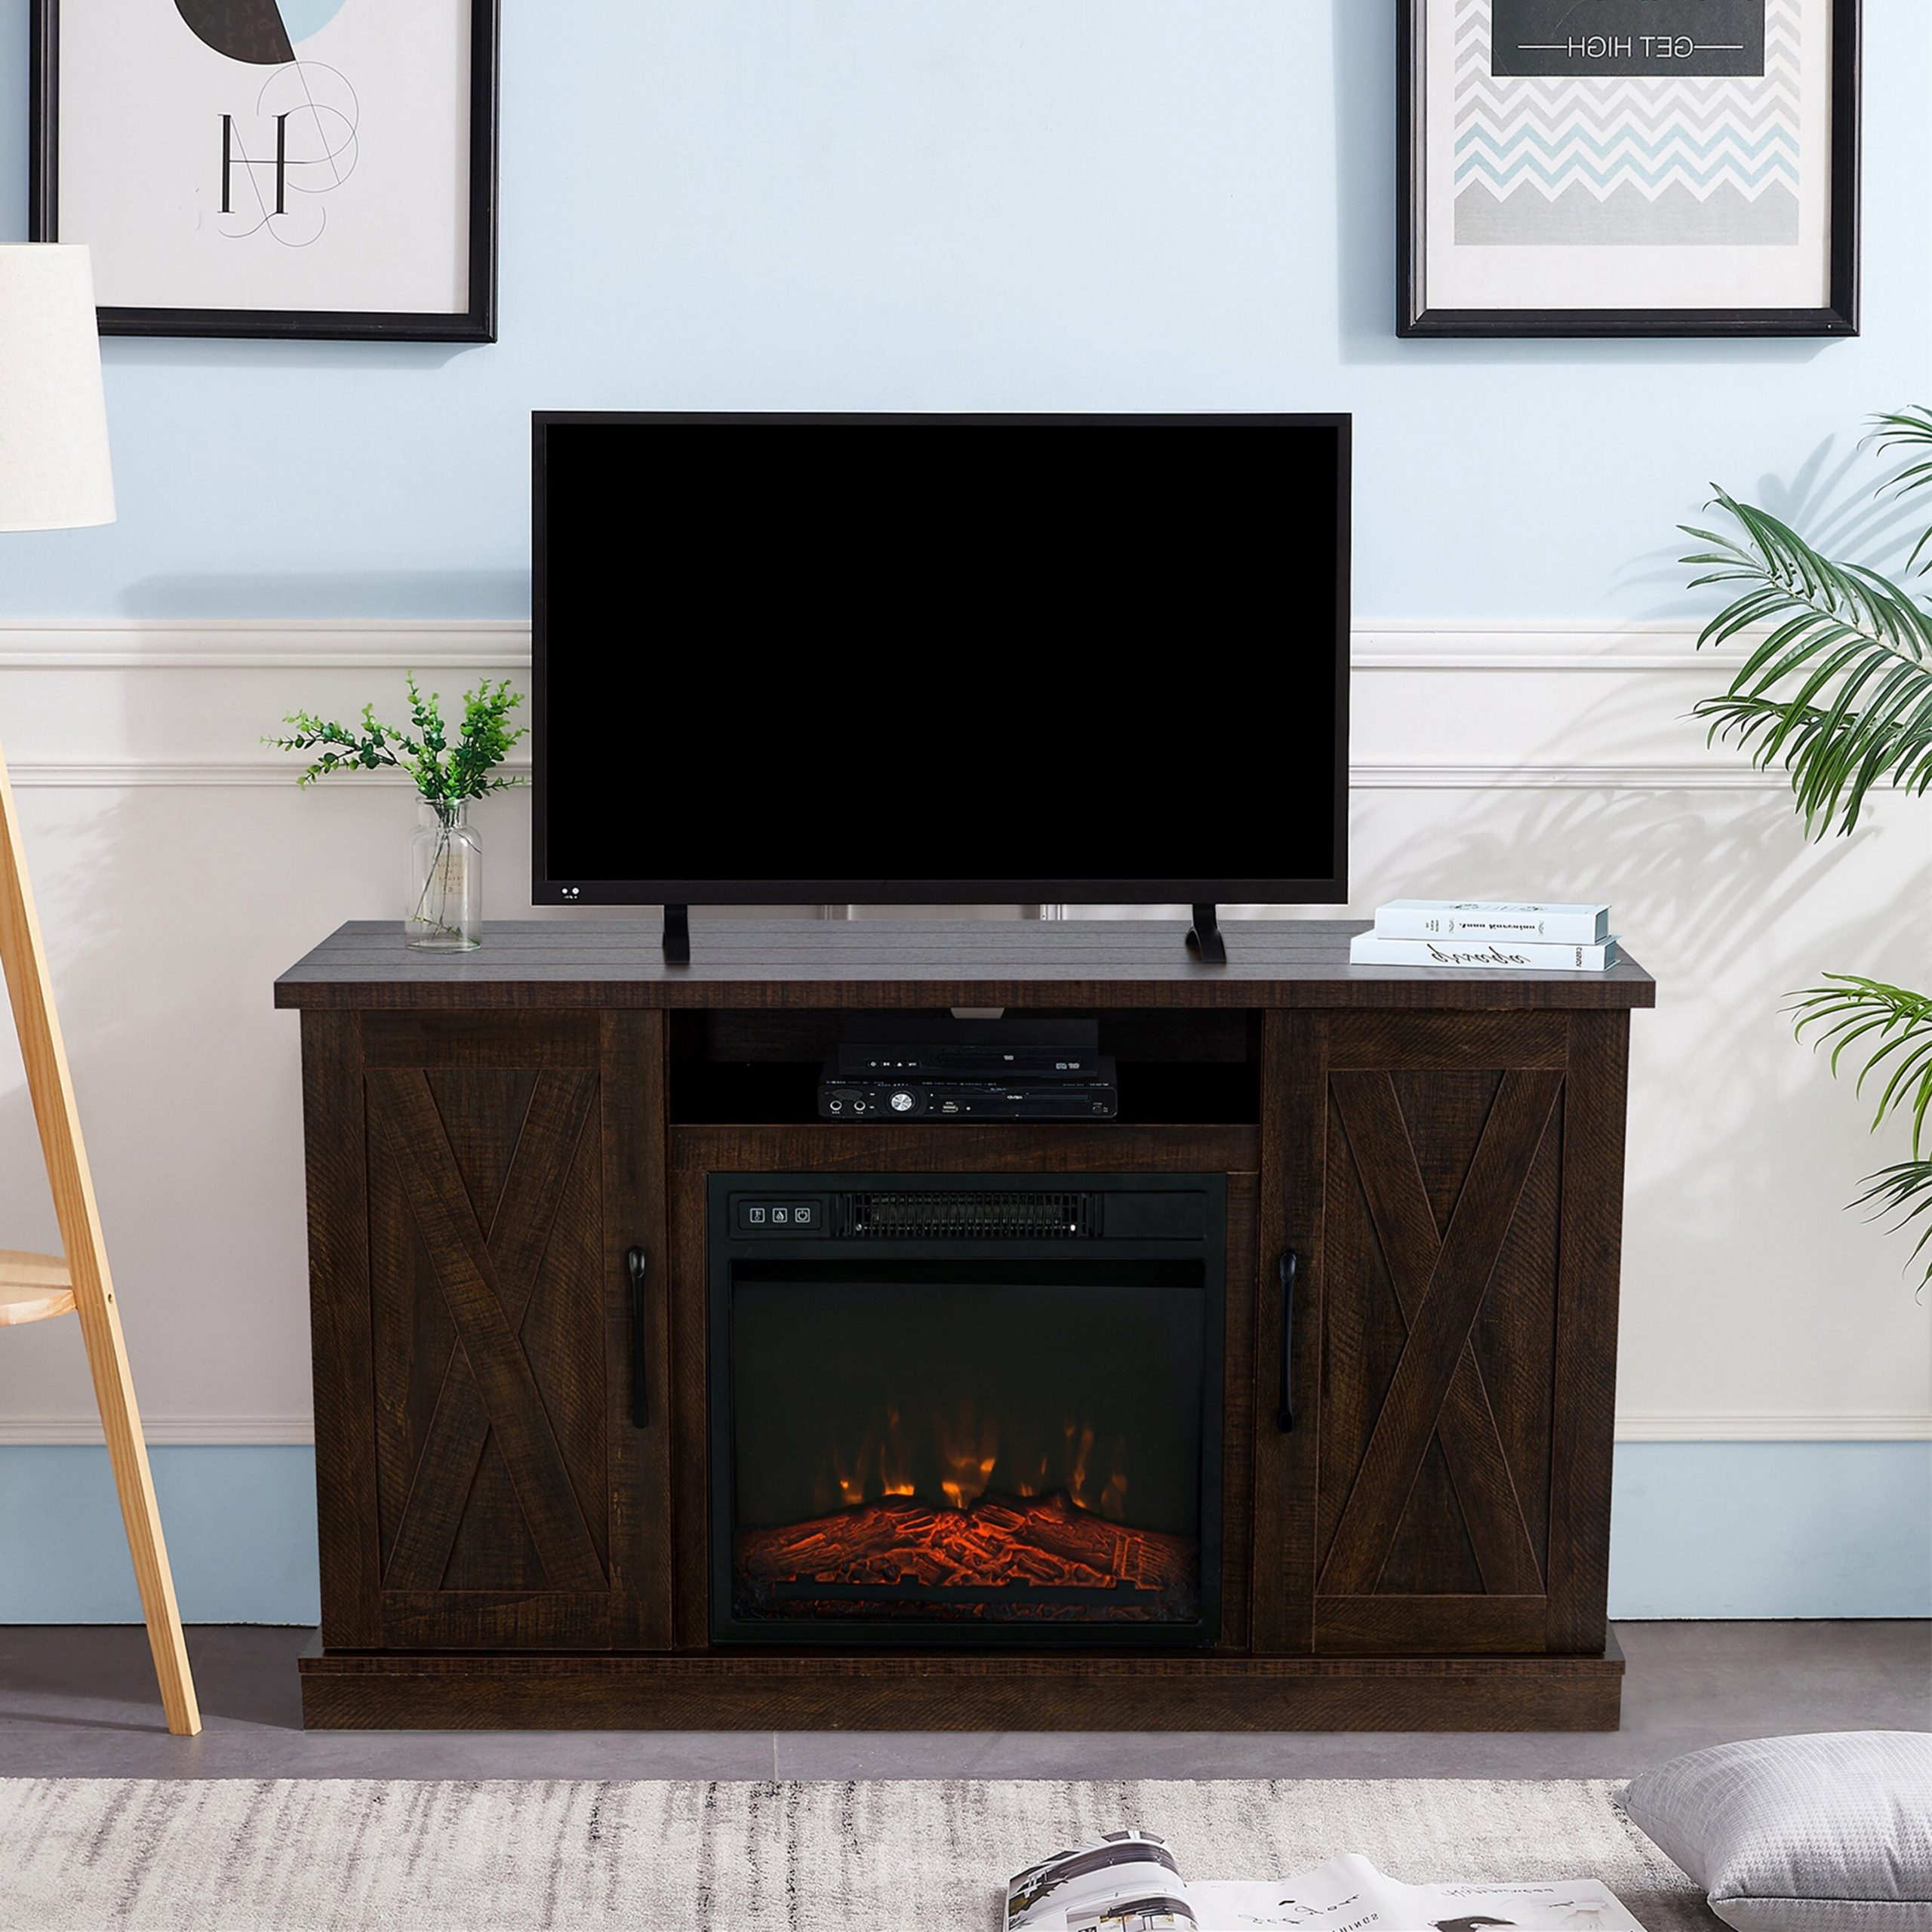 """Eutropios Tv Stand For Tvs Up To 65"""" With Electric Fireplace Included Intended For Eutropios Tv Stand With Electric Fireplace Included (View 2 of 20)"""